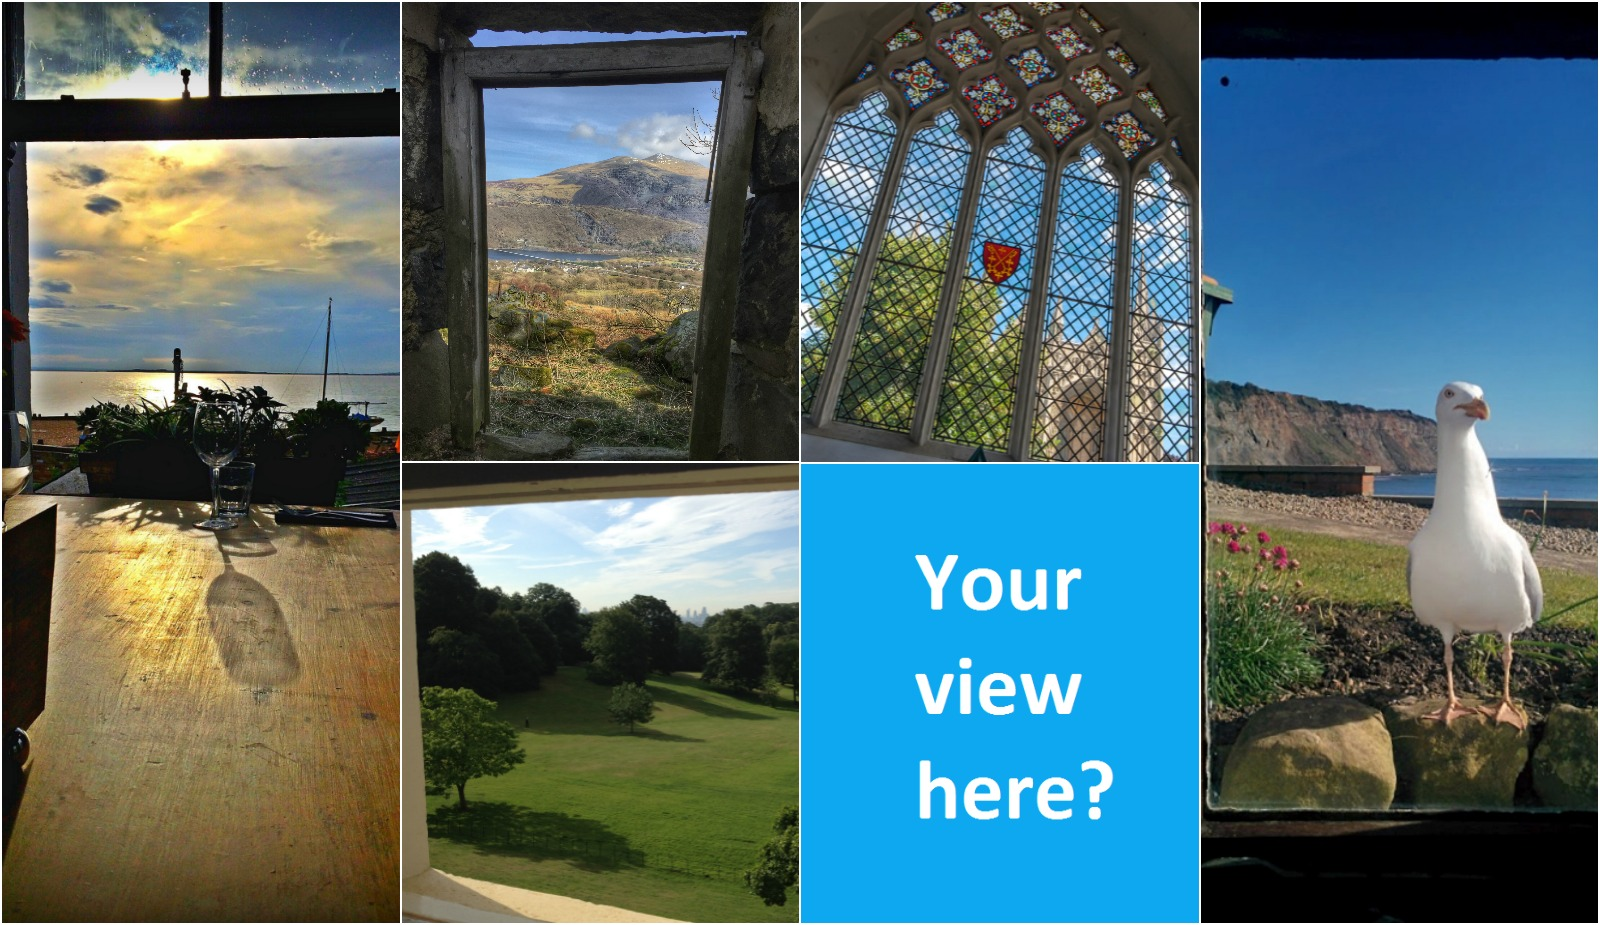 collage of myglazing.com window with a view finalists from 2016